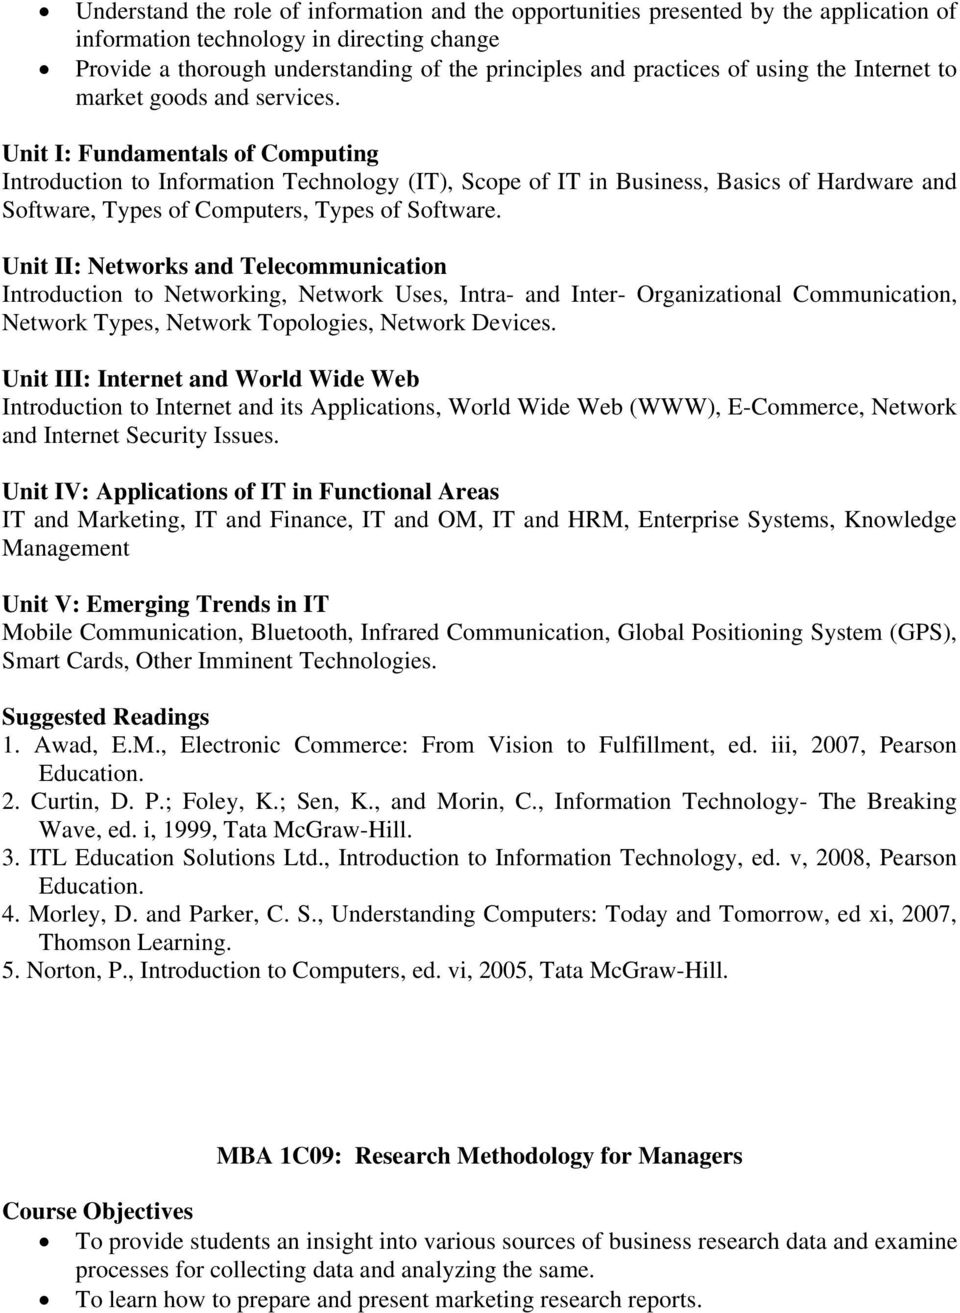 Unit I: Fundamentals of Computing Introduction to Information Technology (IT), Scope of IT in Business, Basics of Hardware and Software, Types of Computers, Types of Software.